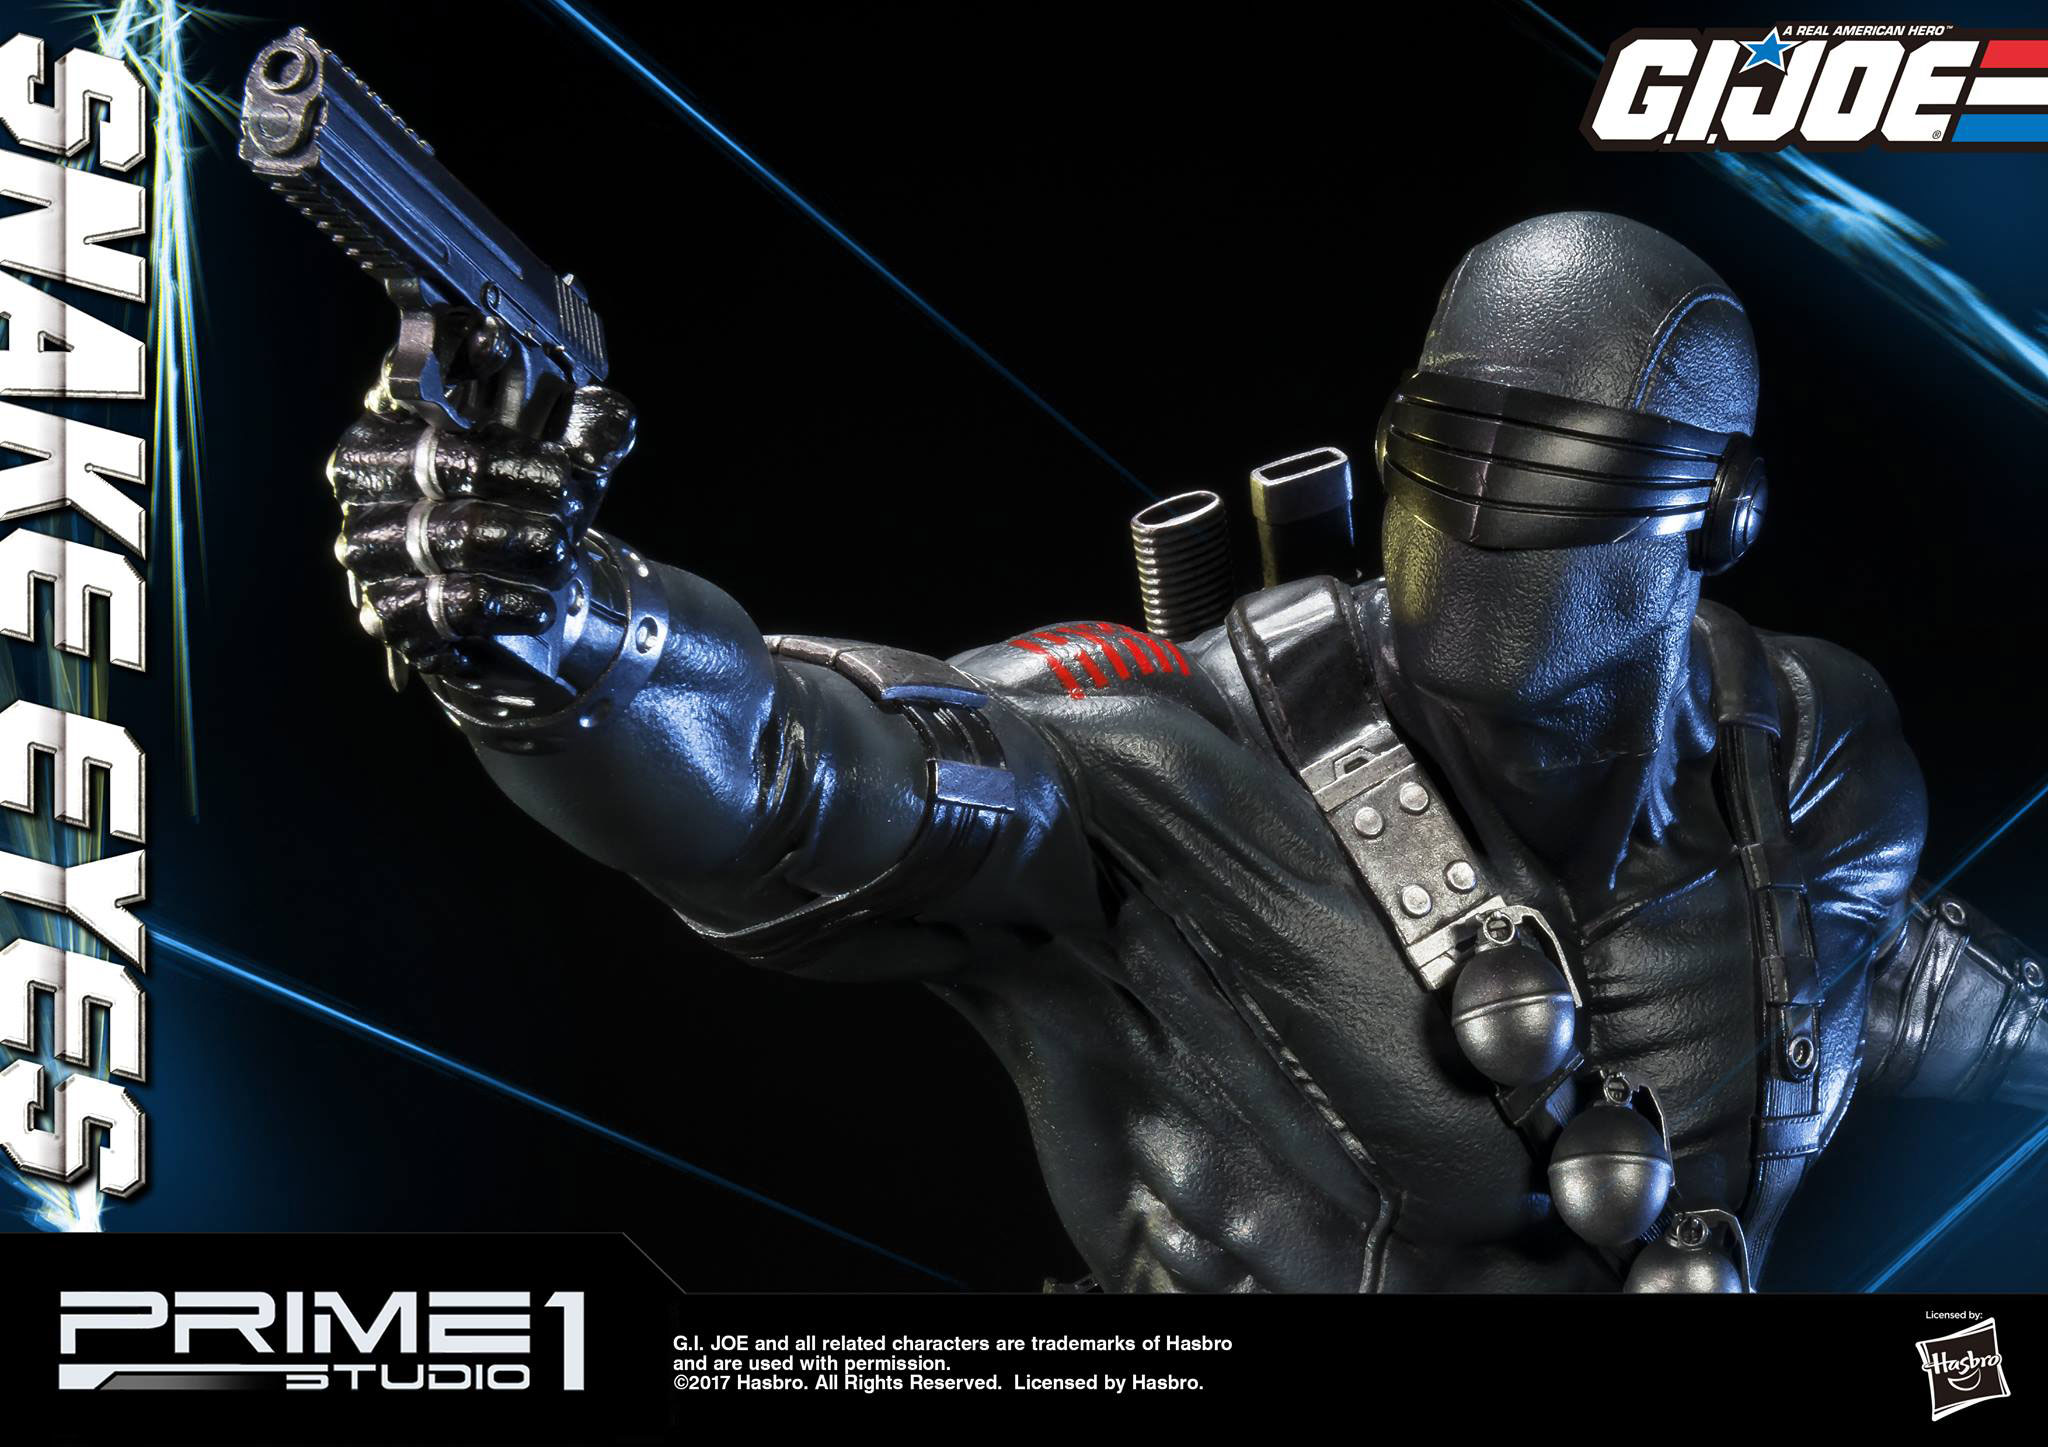 prime-1-studio-snake-eyes-gi-joe-statue-4